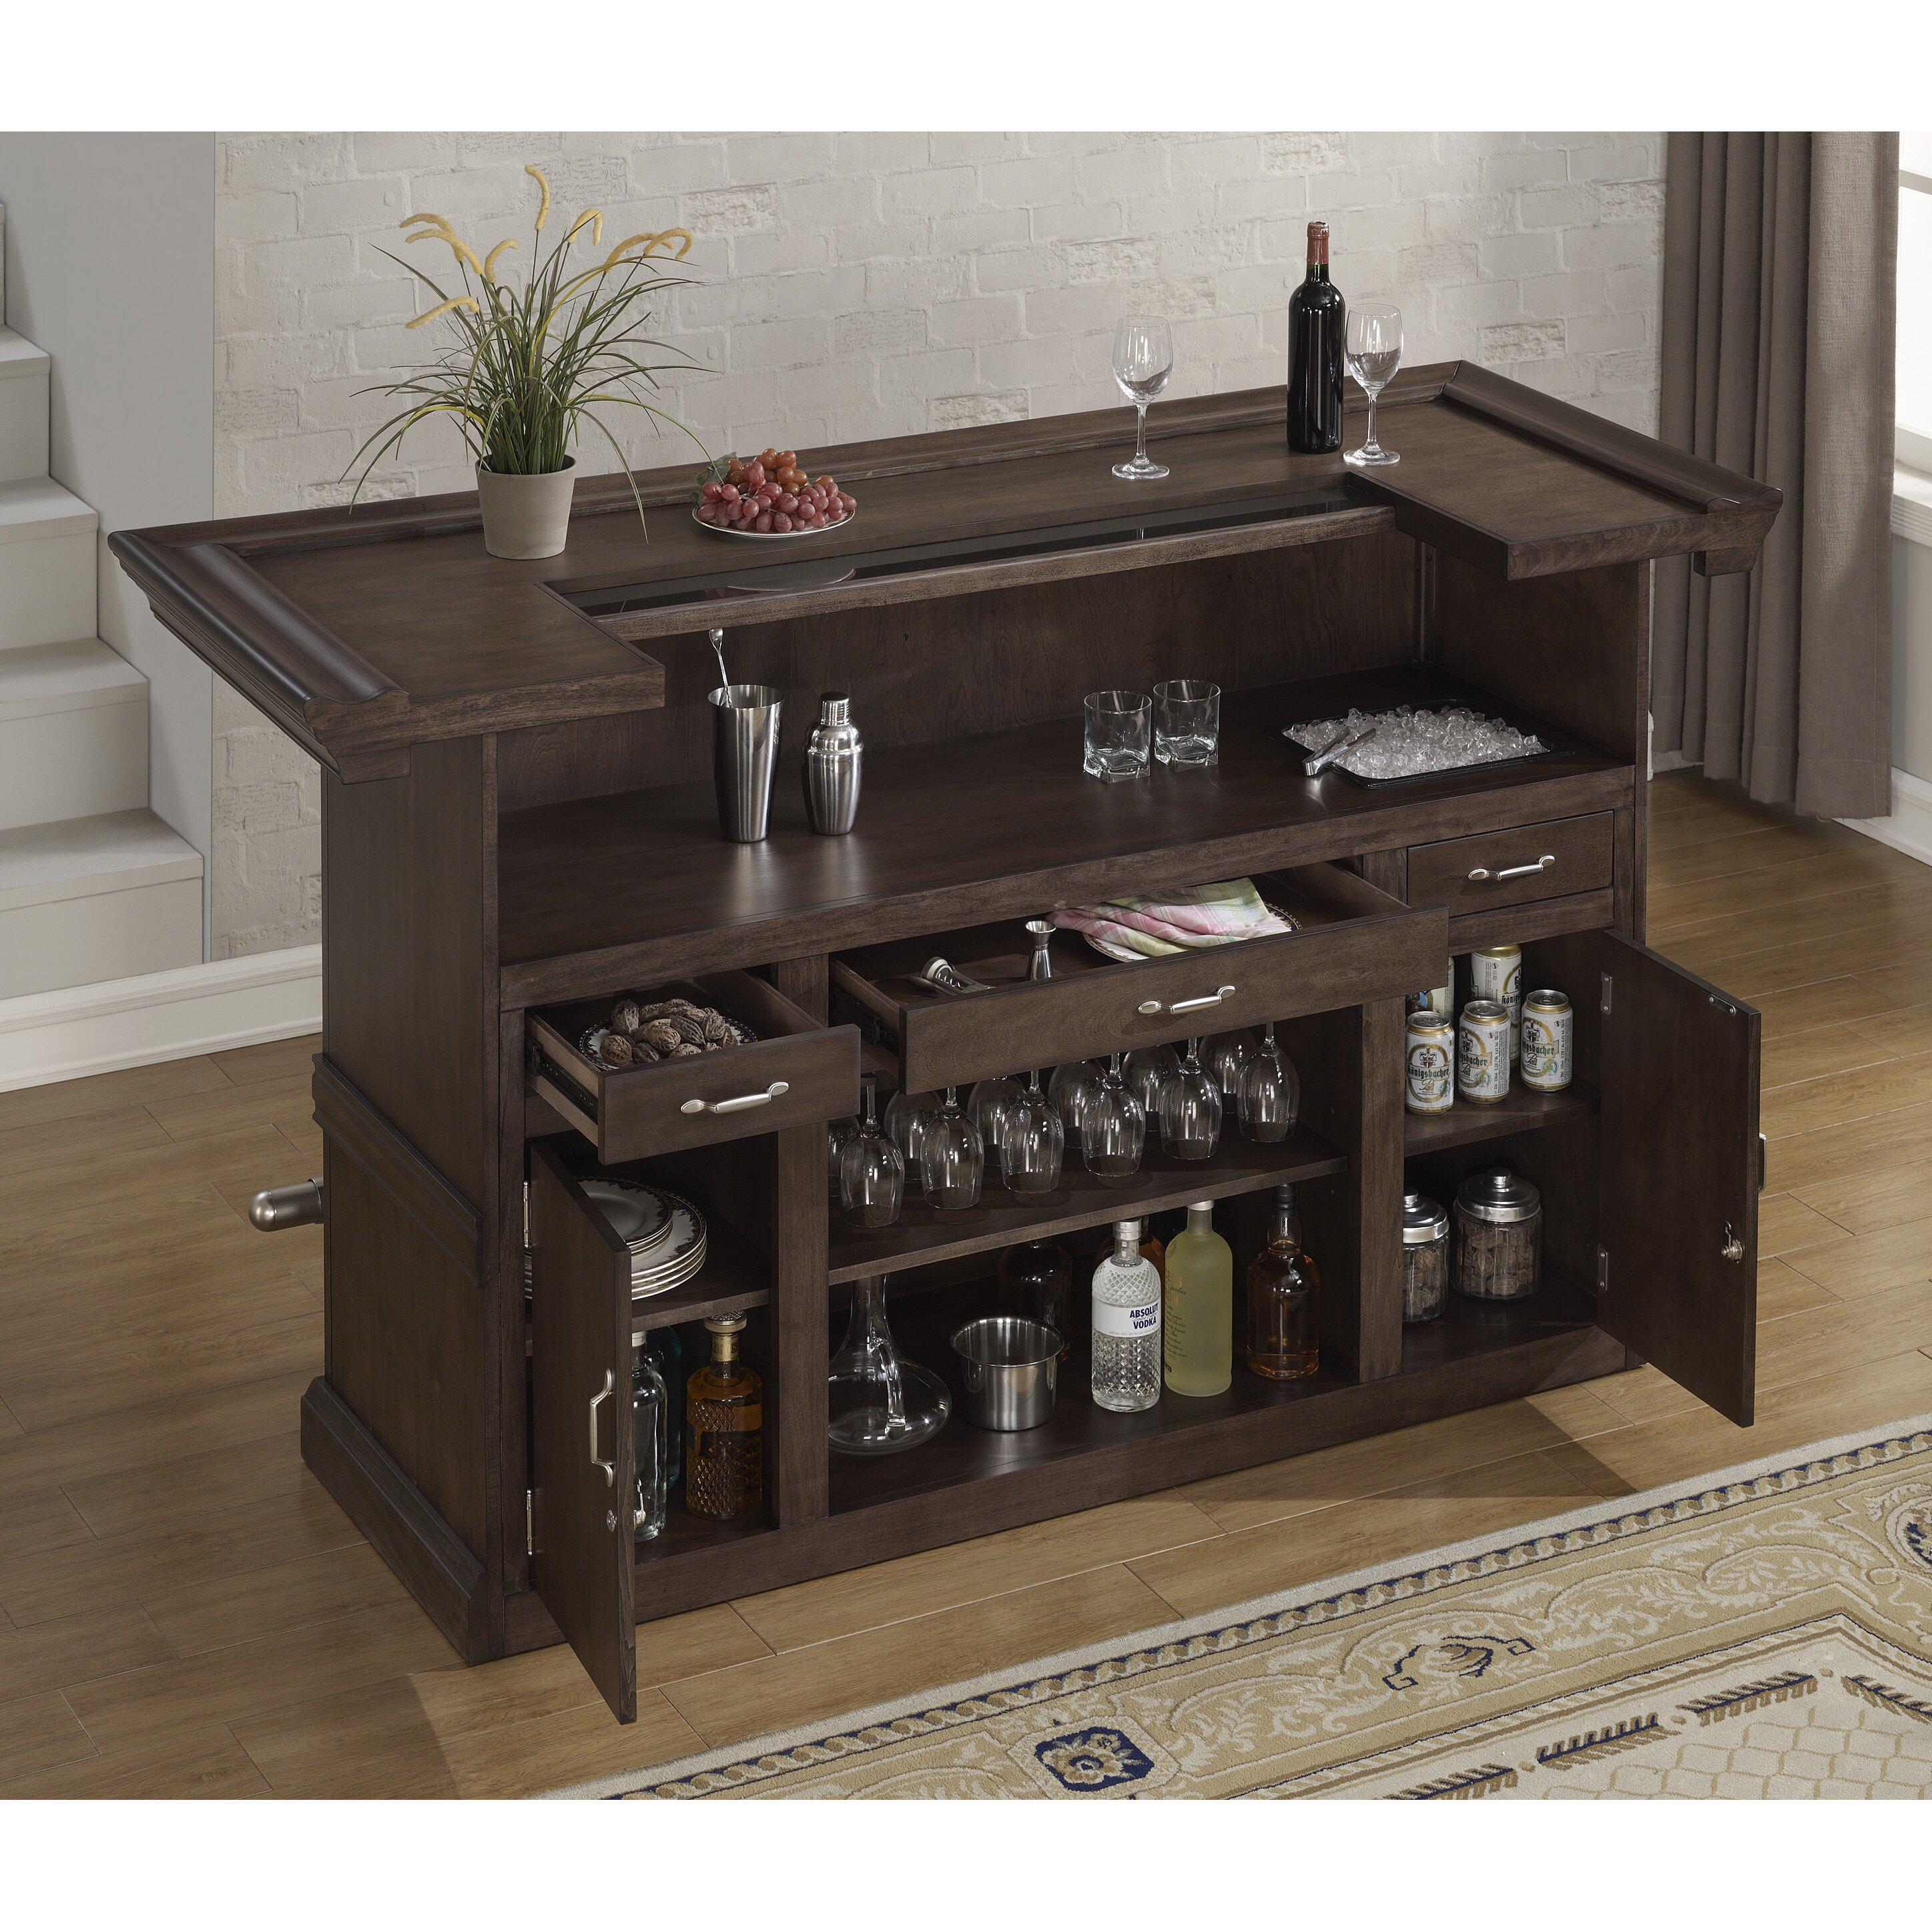 Home Wine Bar: Darby Home Co Monmouth Bar With Wine Storage & Reviews